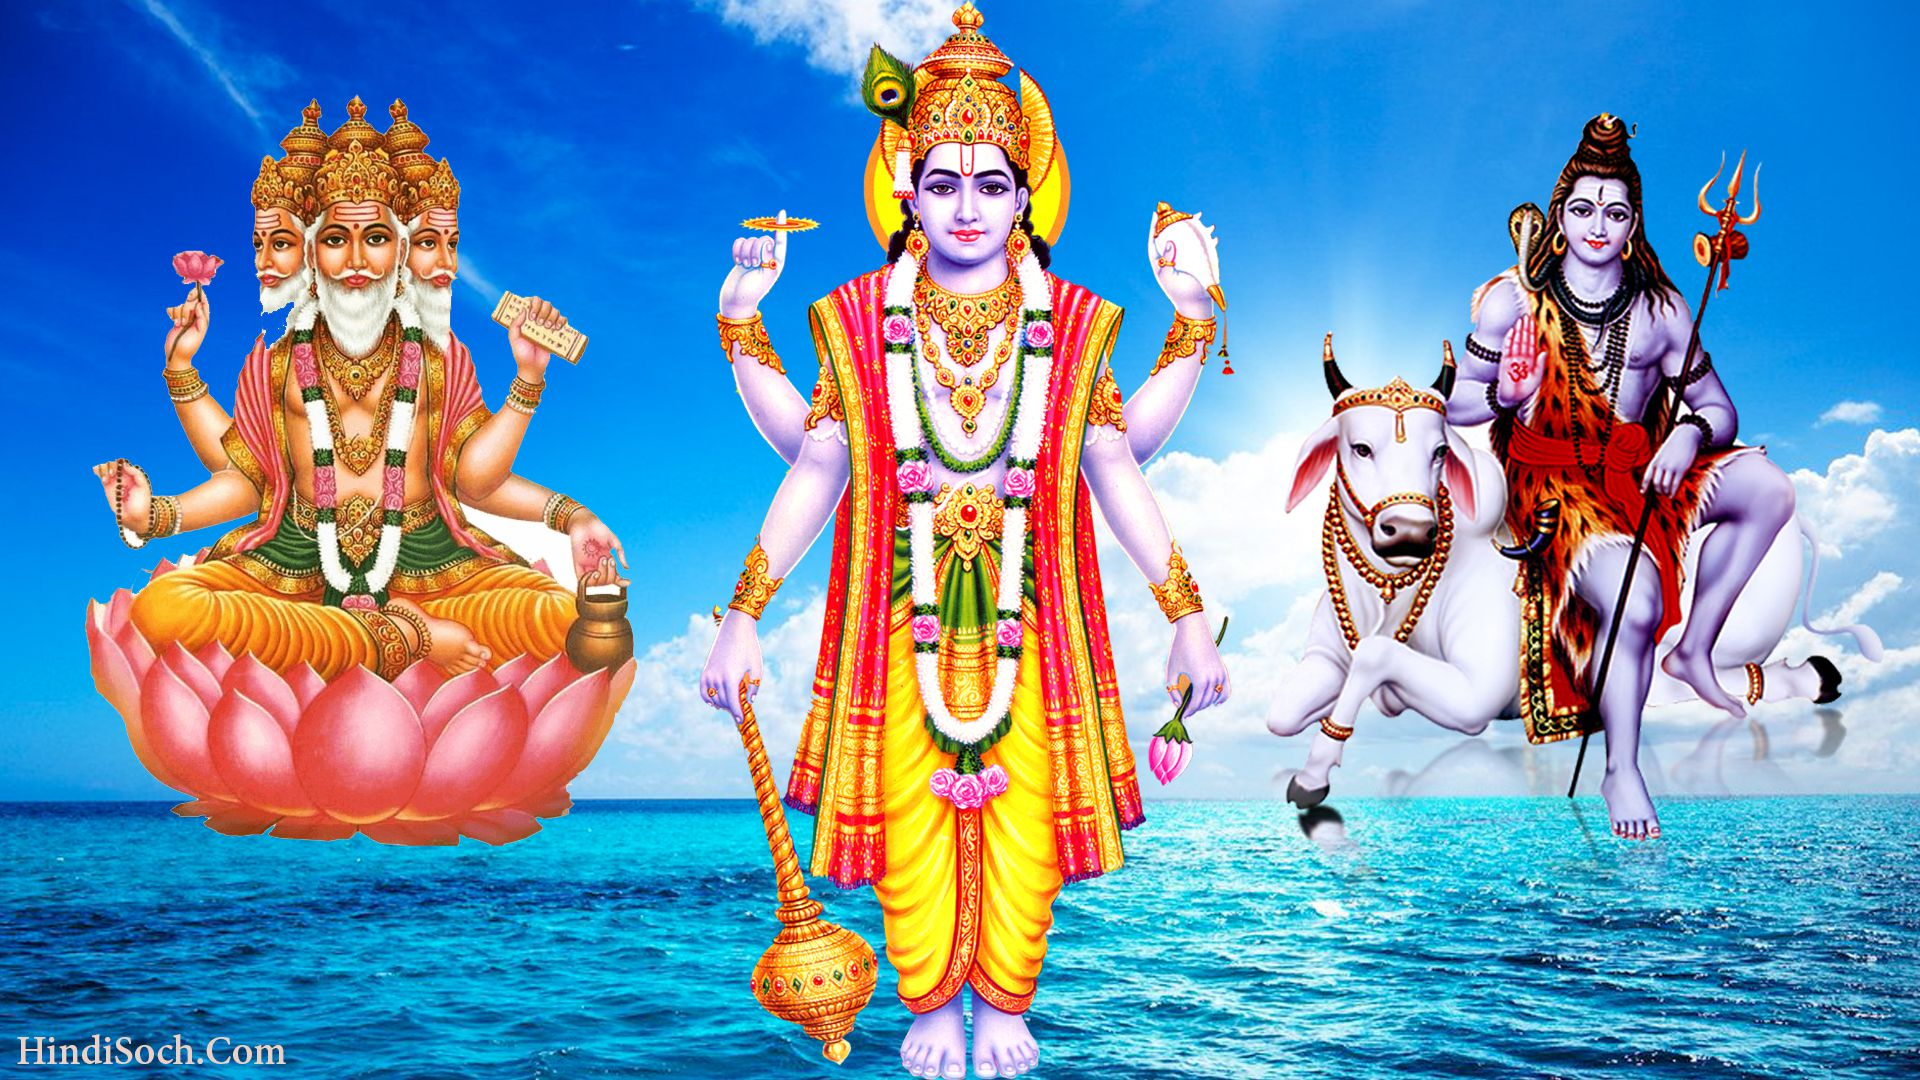 best 3 487 hd god images hindu god wallpapers for mobile phones hd god images hindu god wallpapers for